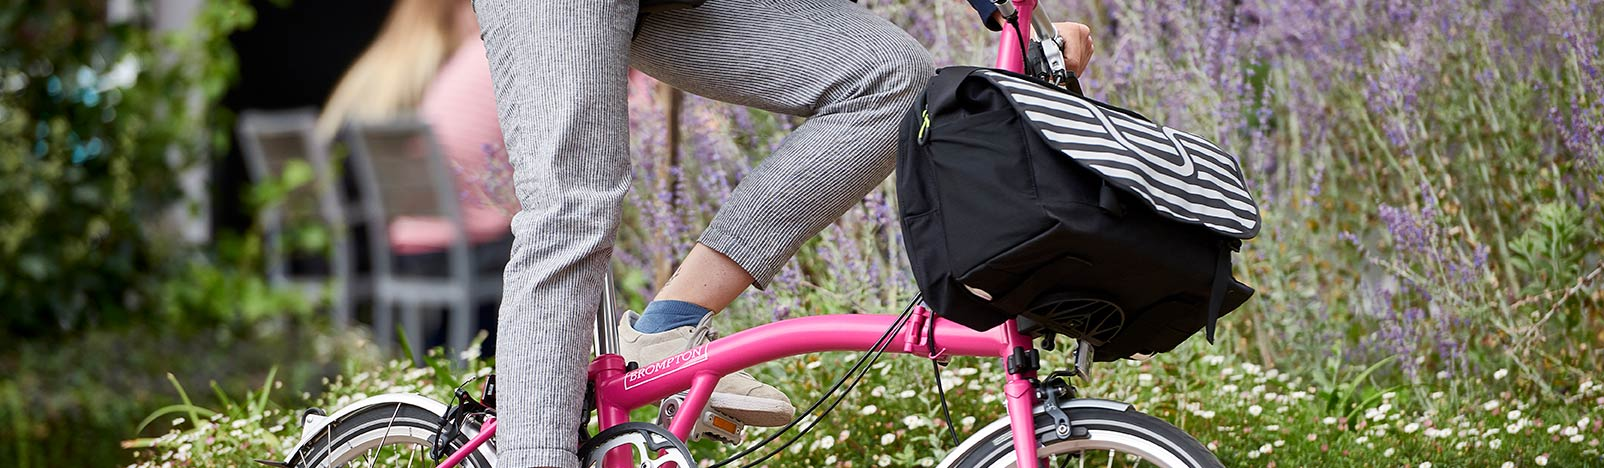 Brompton Spring Gift Guide 2019